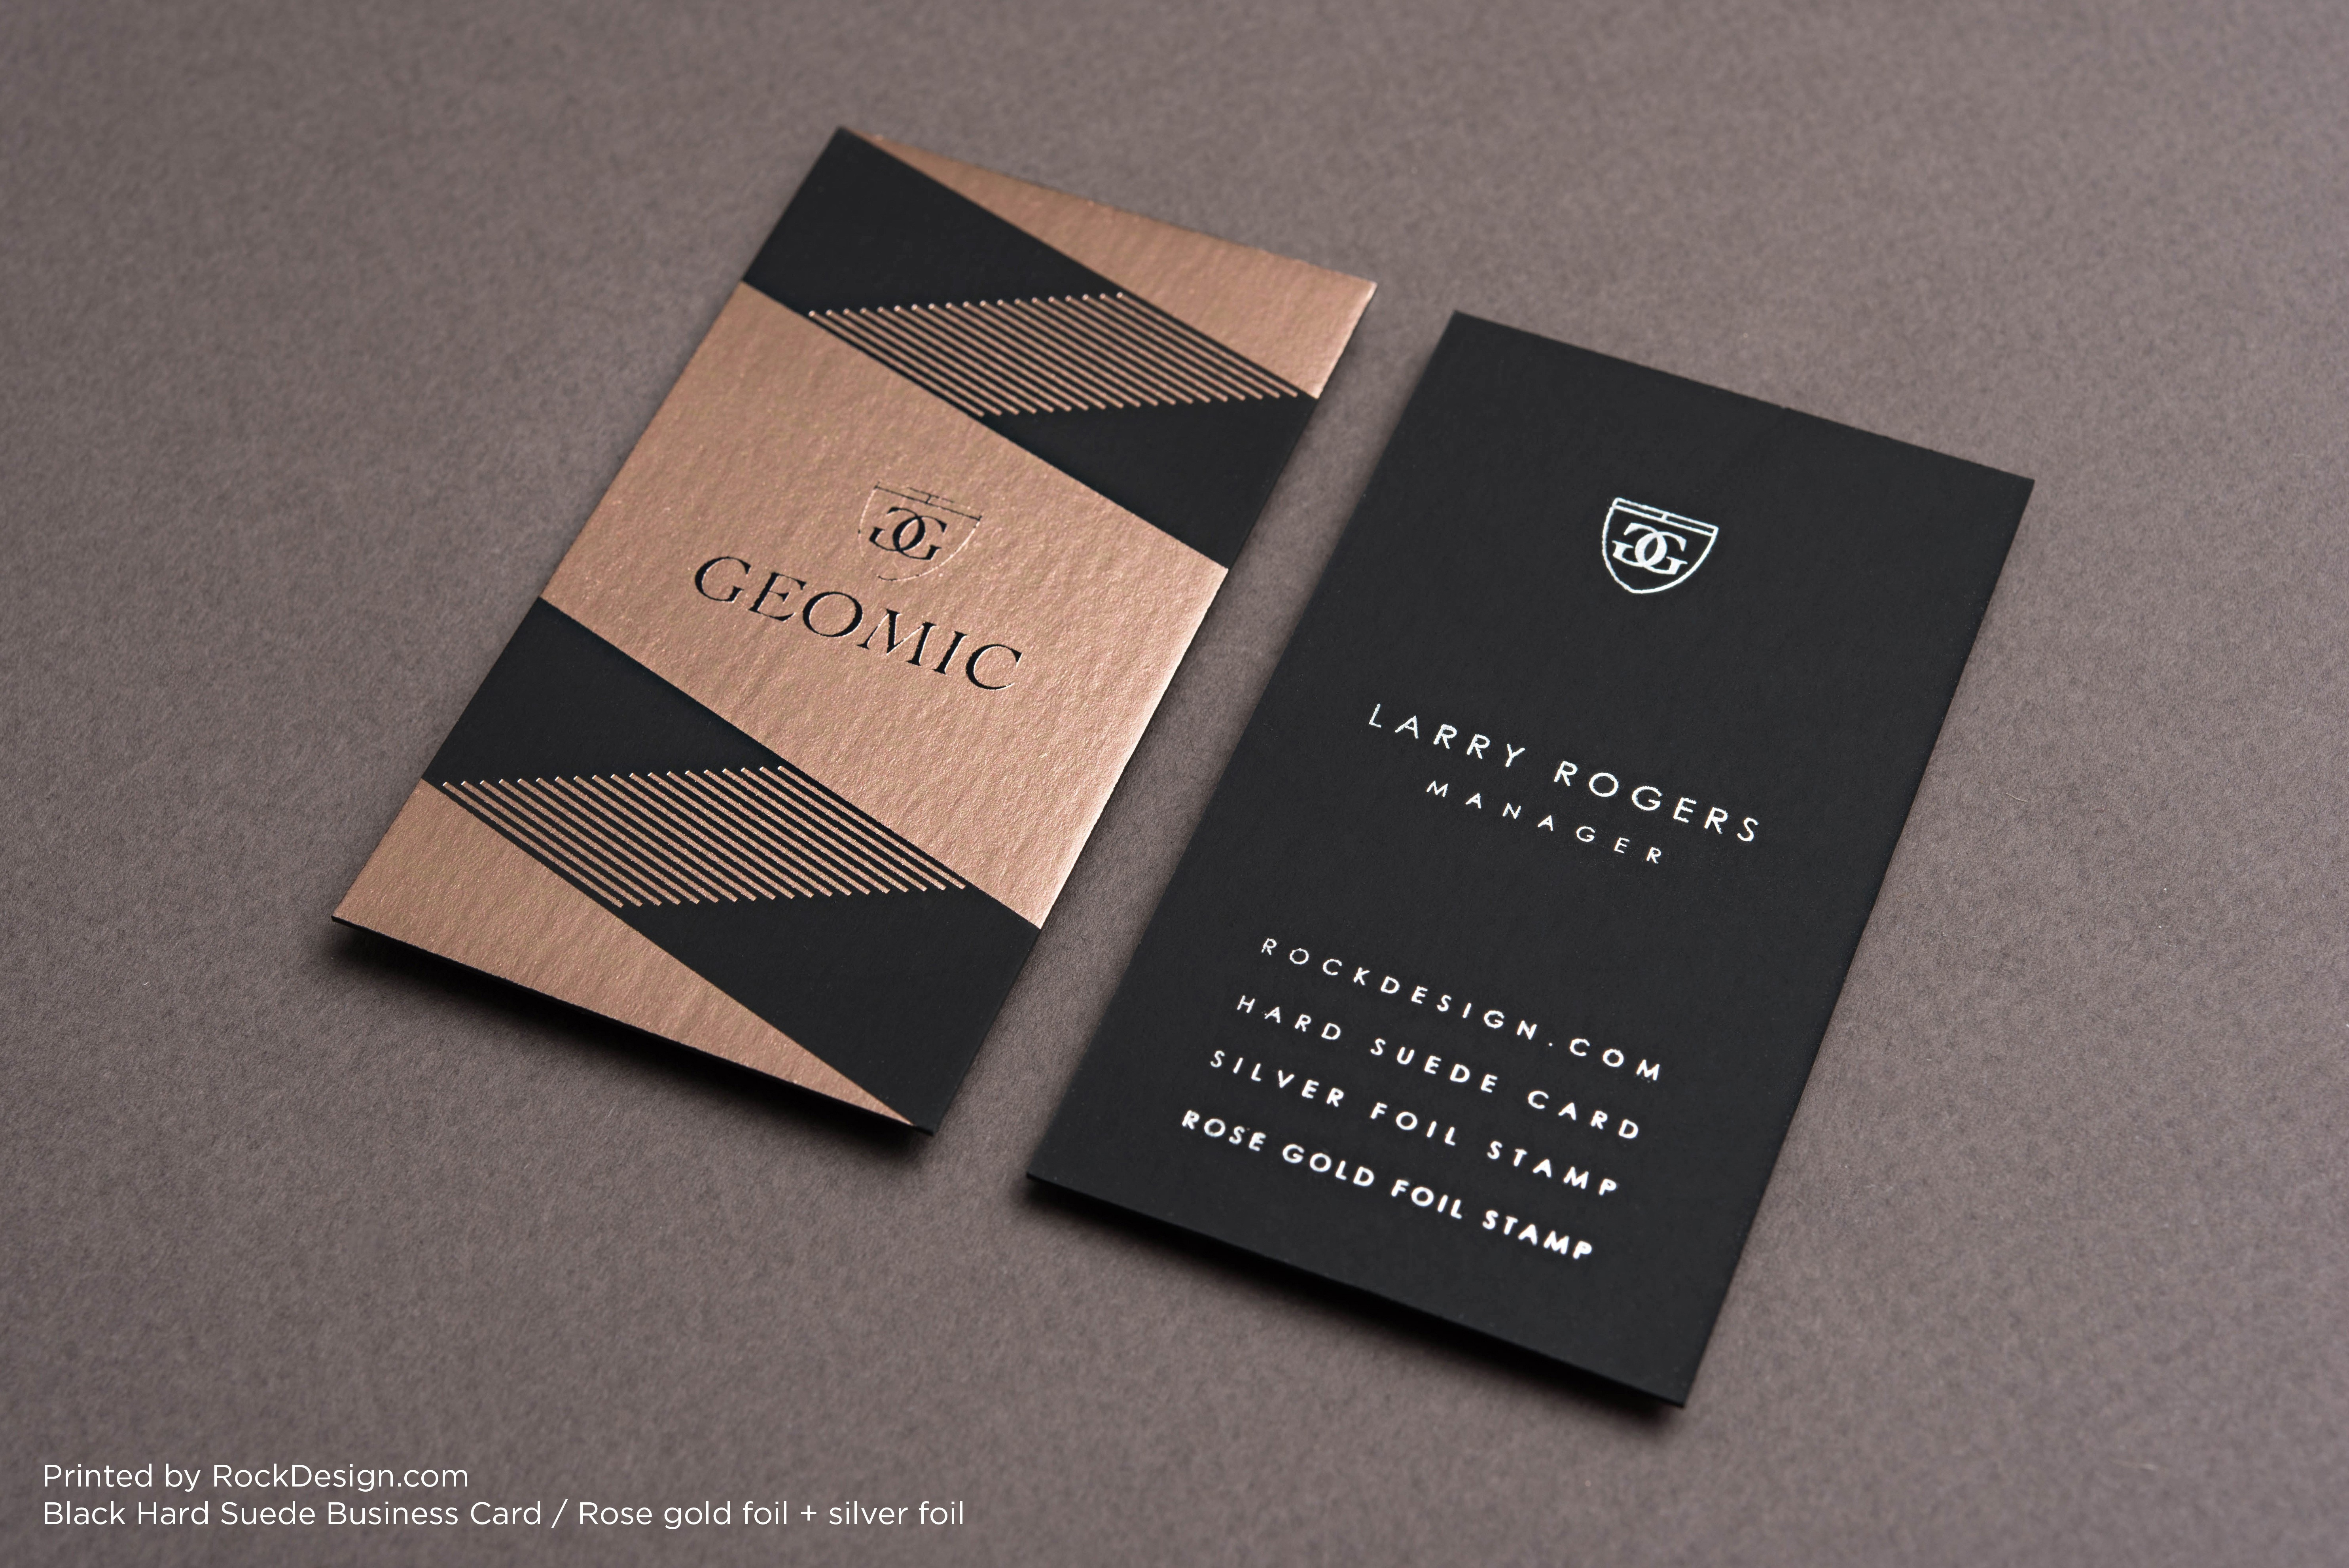 Print Your Own Business Cards Free Template New Vista Print Within Vista Print Business Card Template